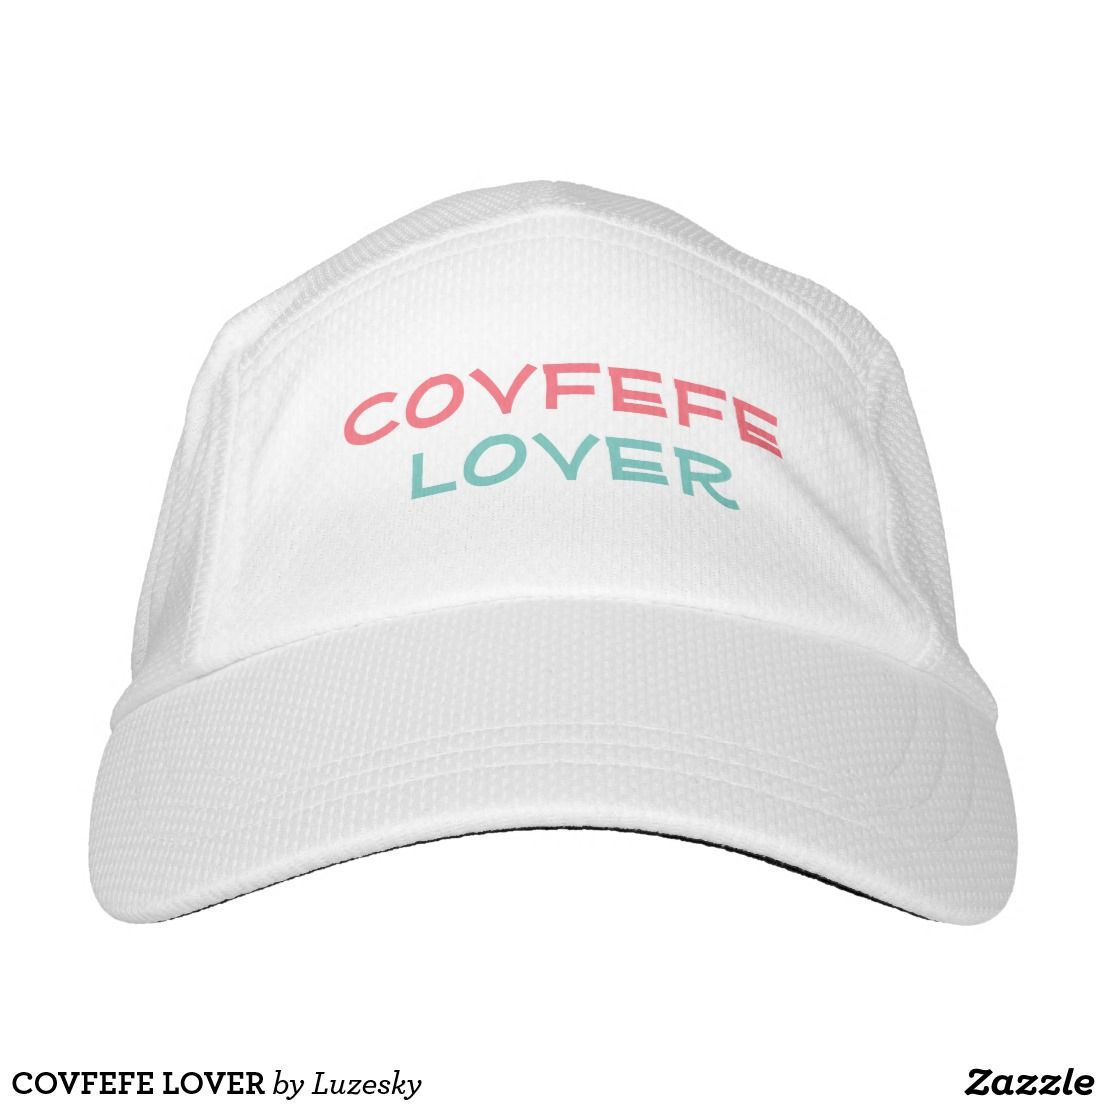 b5e0c32c32d COVFEFE LOVER HEADSWEATS HAT